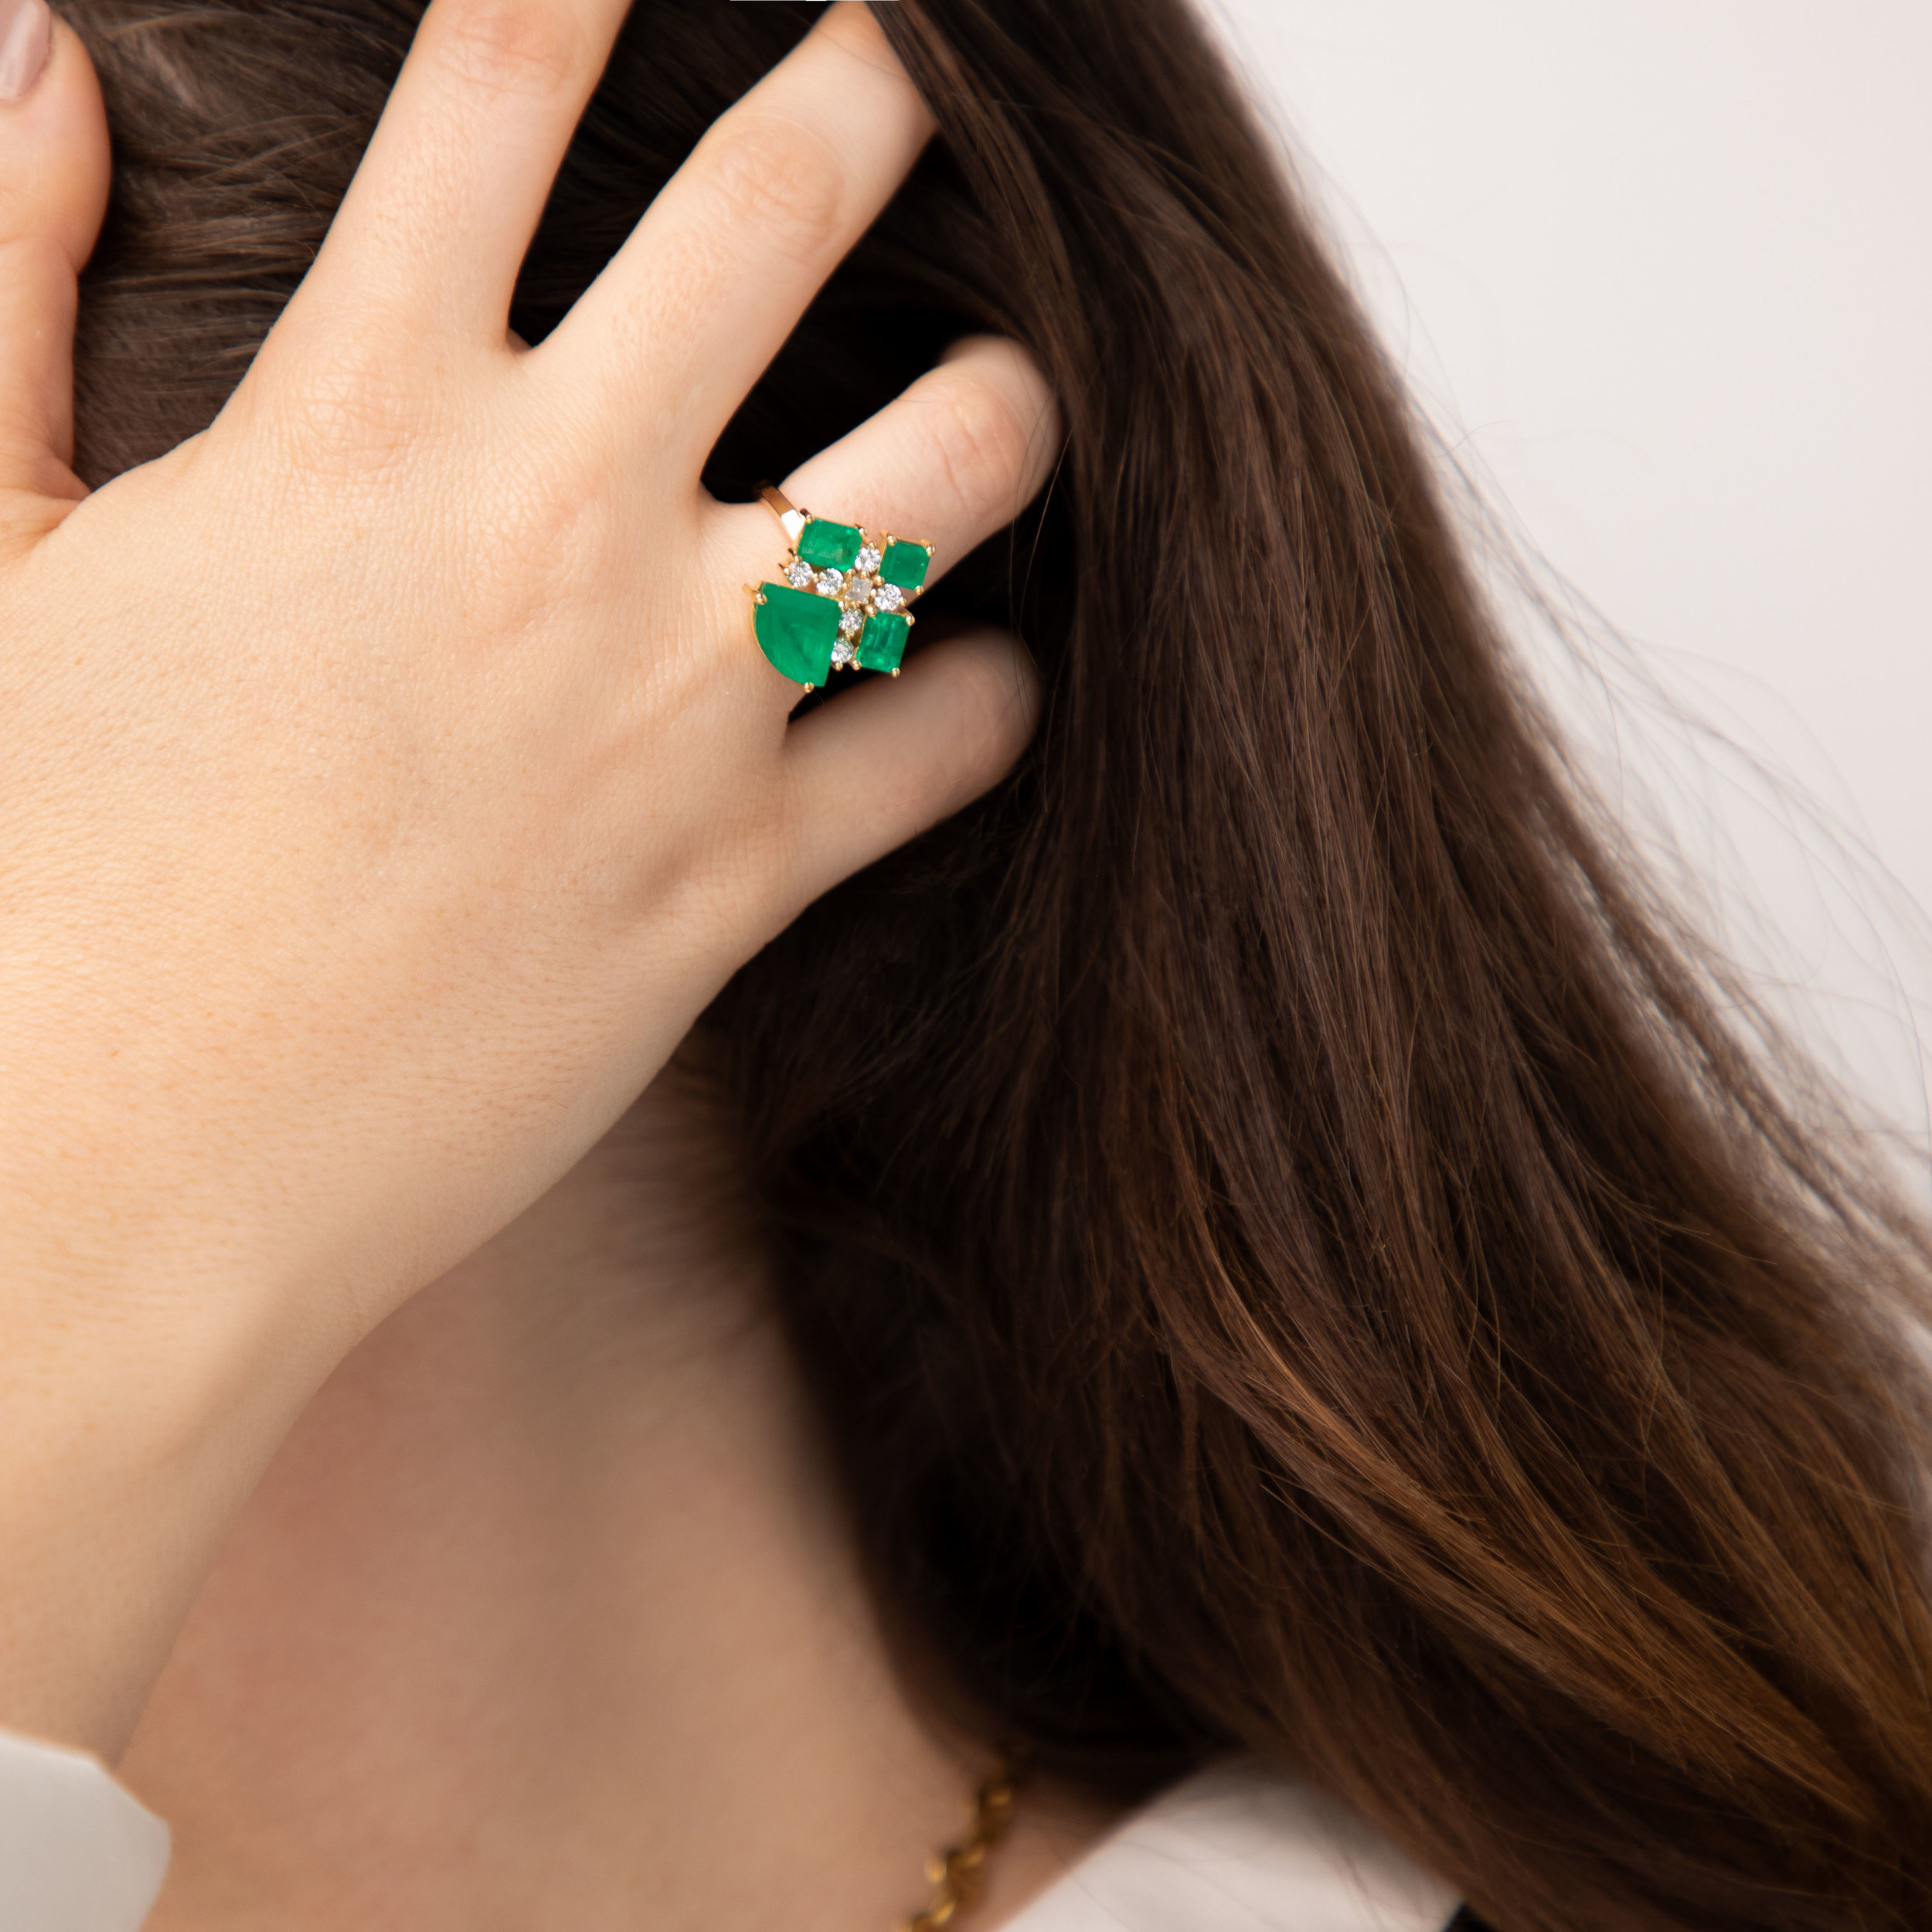 Loulou ring - unique piece, 18k yellow gold set with natural Colombian emeralds, white and yellow diamonds